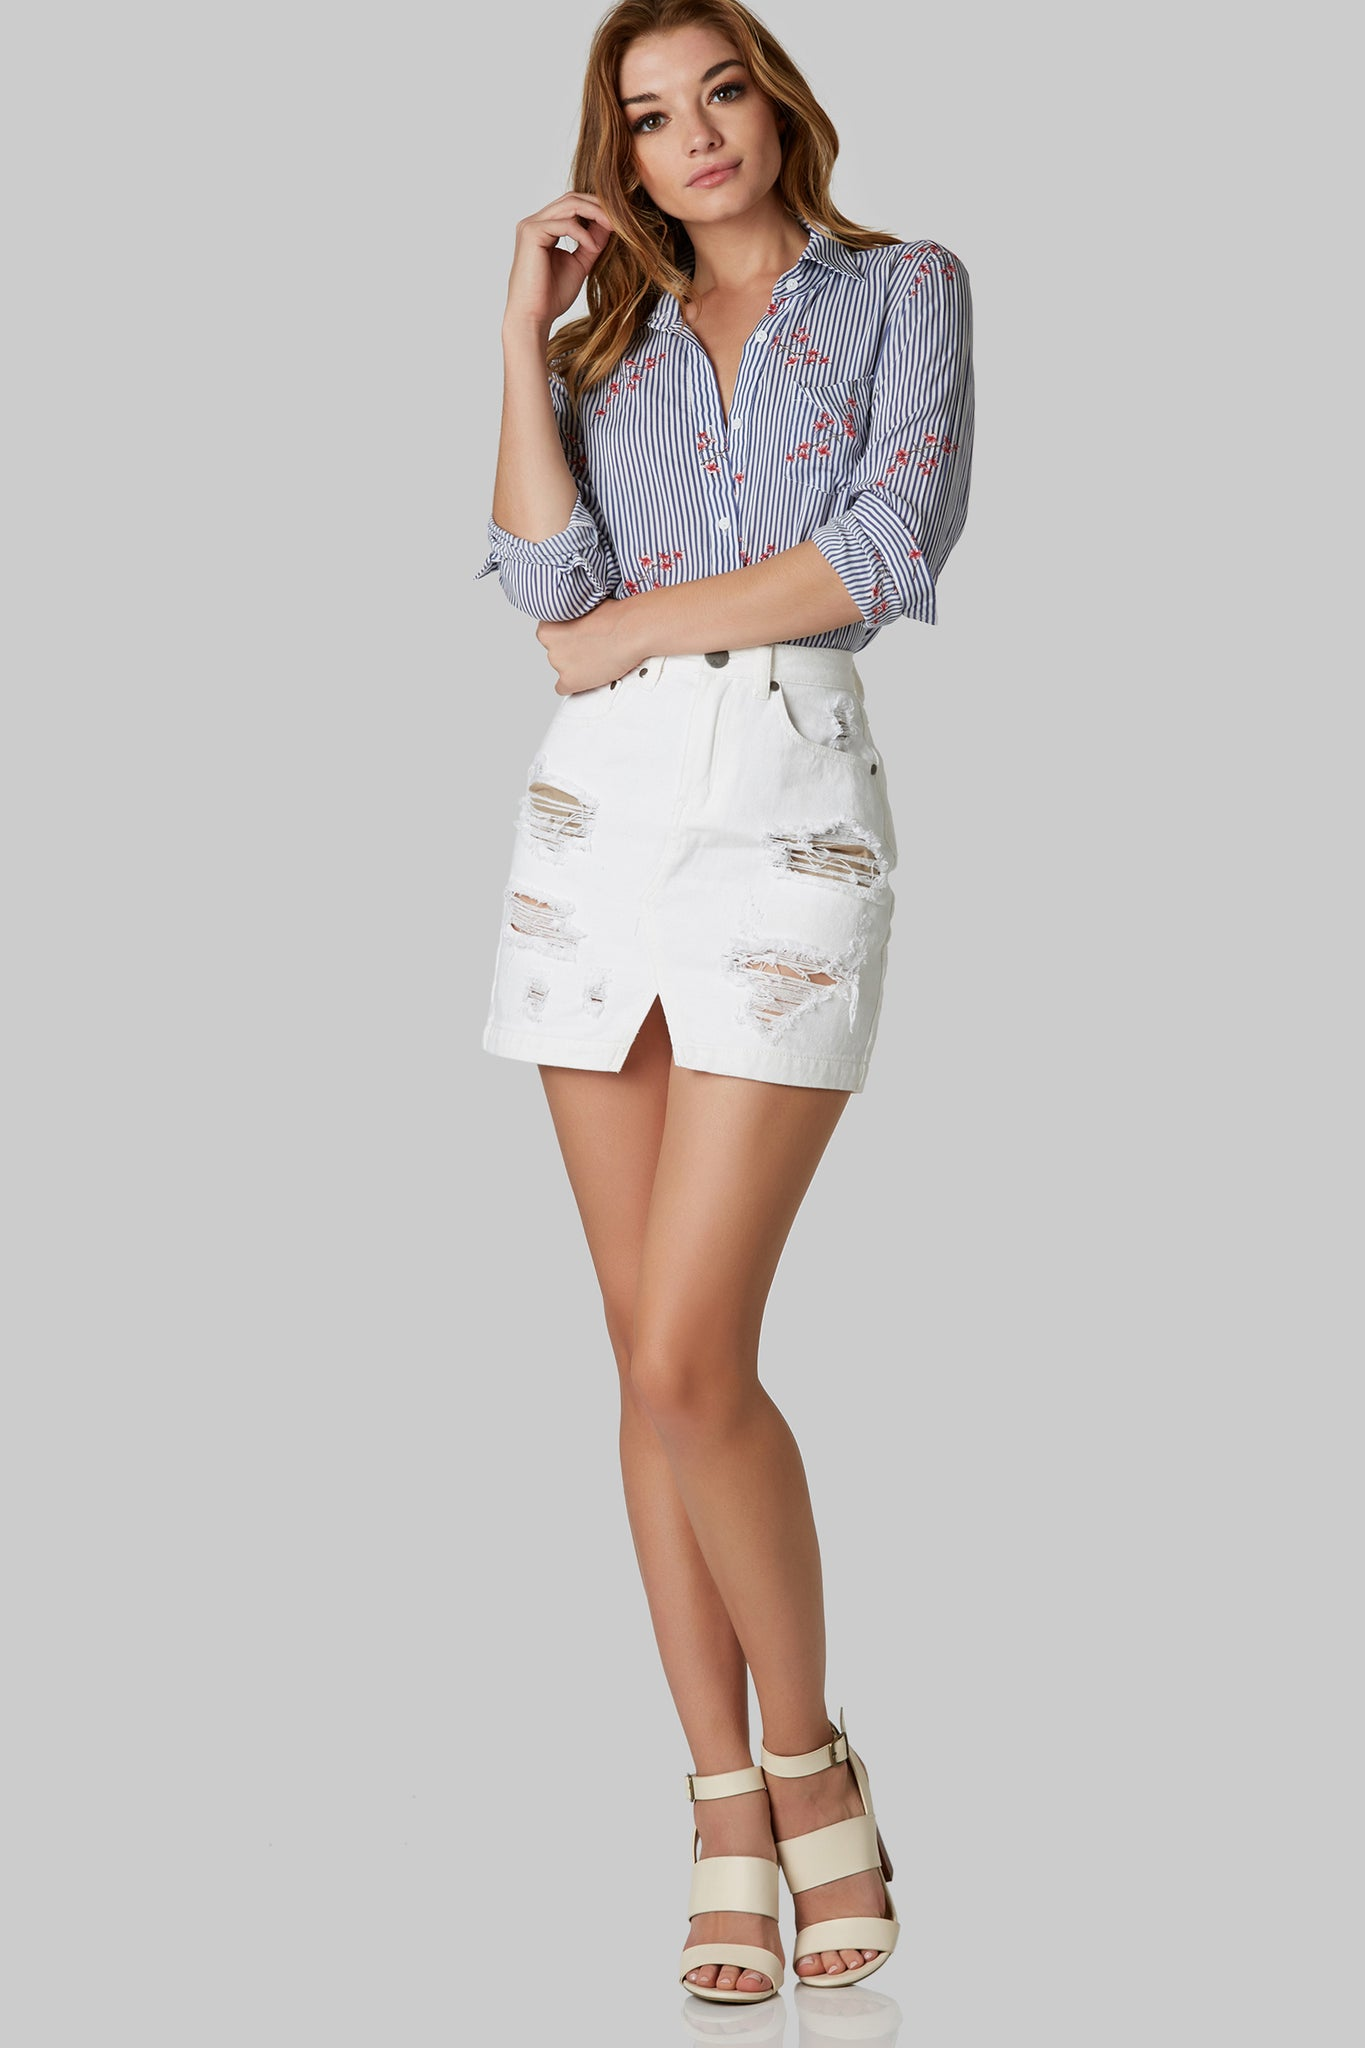 High rise denim mini skirt with shredded detailing throughout. 5 pocket design with cut out hem and button zip closure.